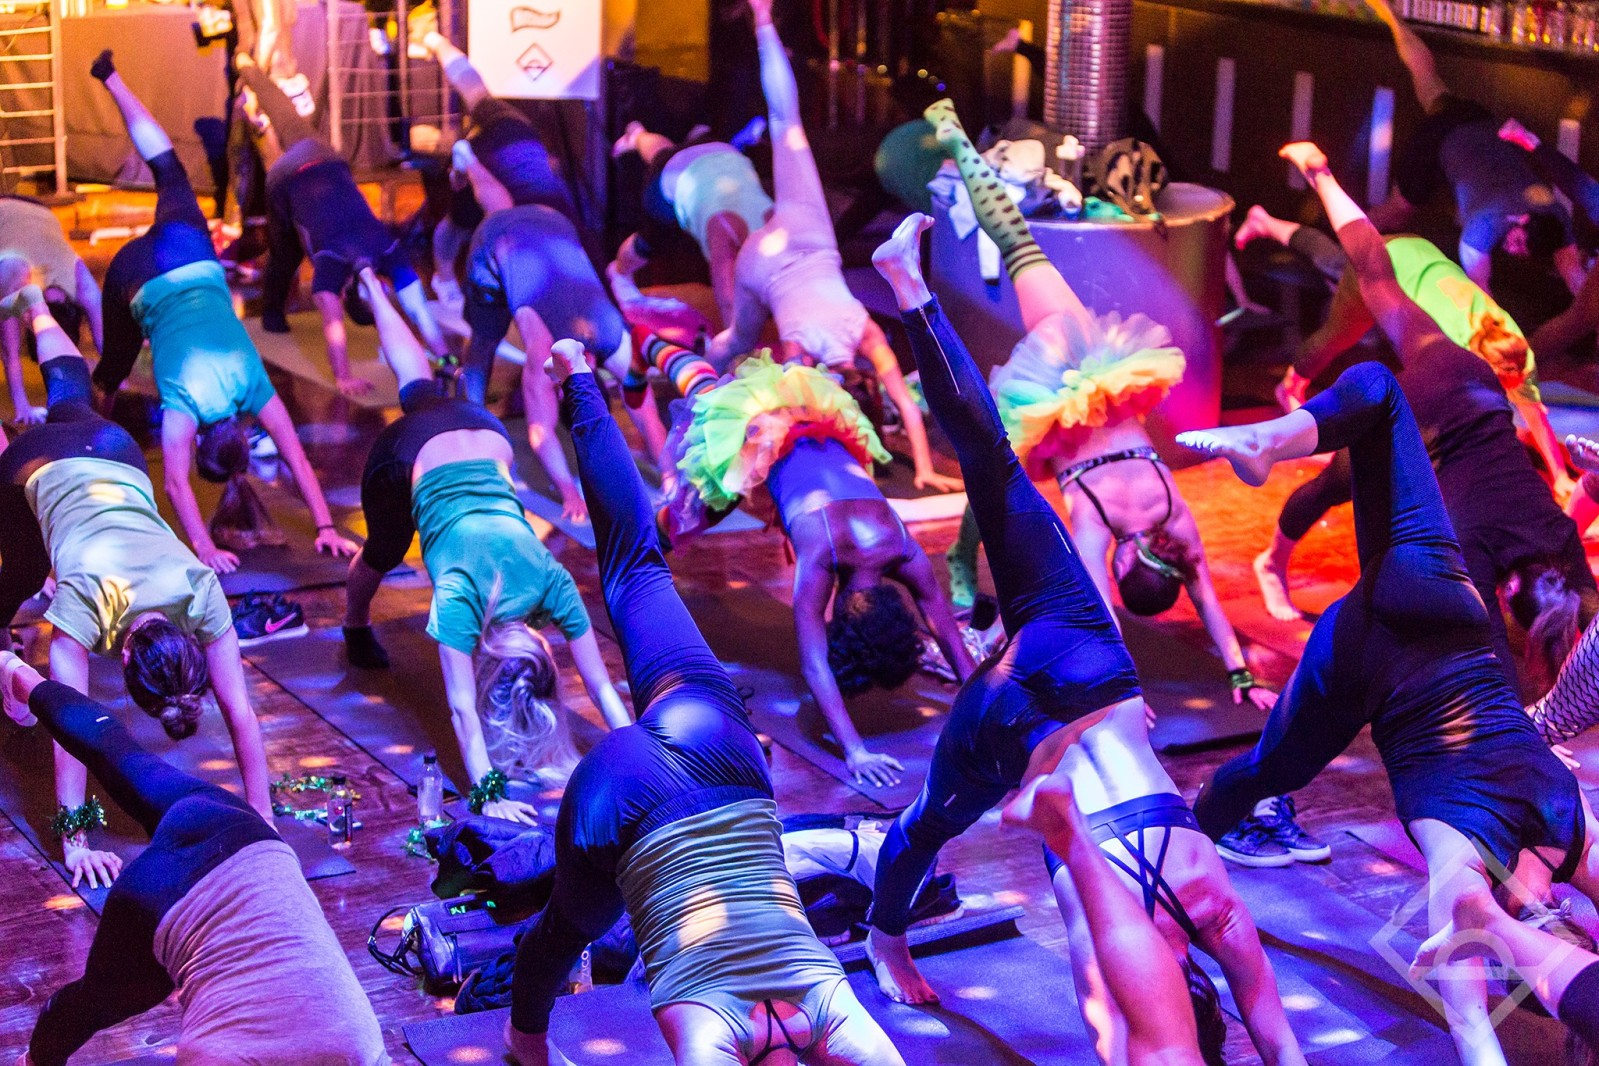 A Daybreaker event, where the pregame is an hour of yoga, at 6AM... Image via Daybreaker.